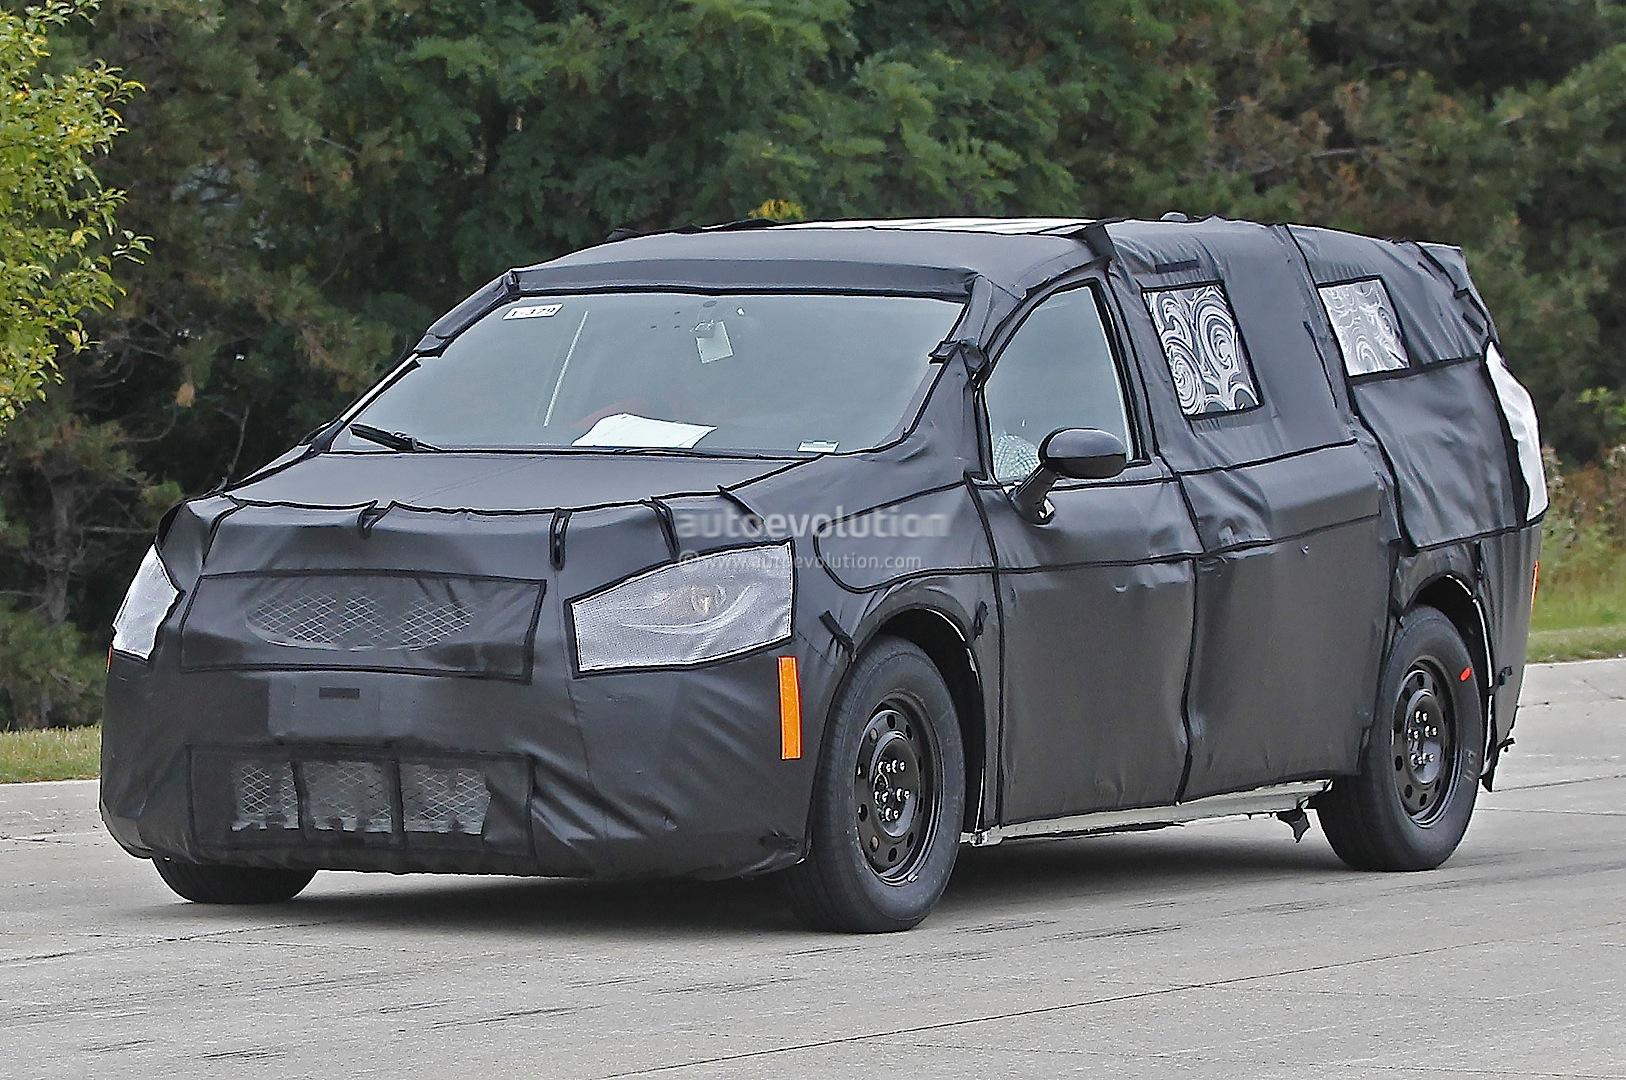 Volkswagen Group Latest Models >> 2017 Chrysler Town & Country Spied Up Close and Personal ...